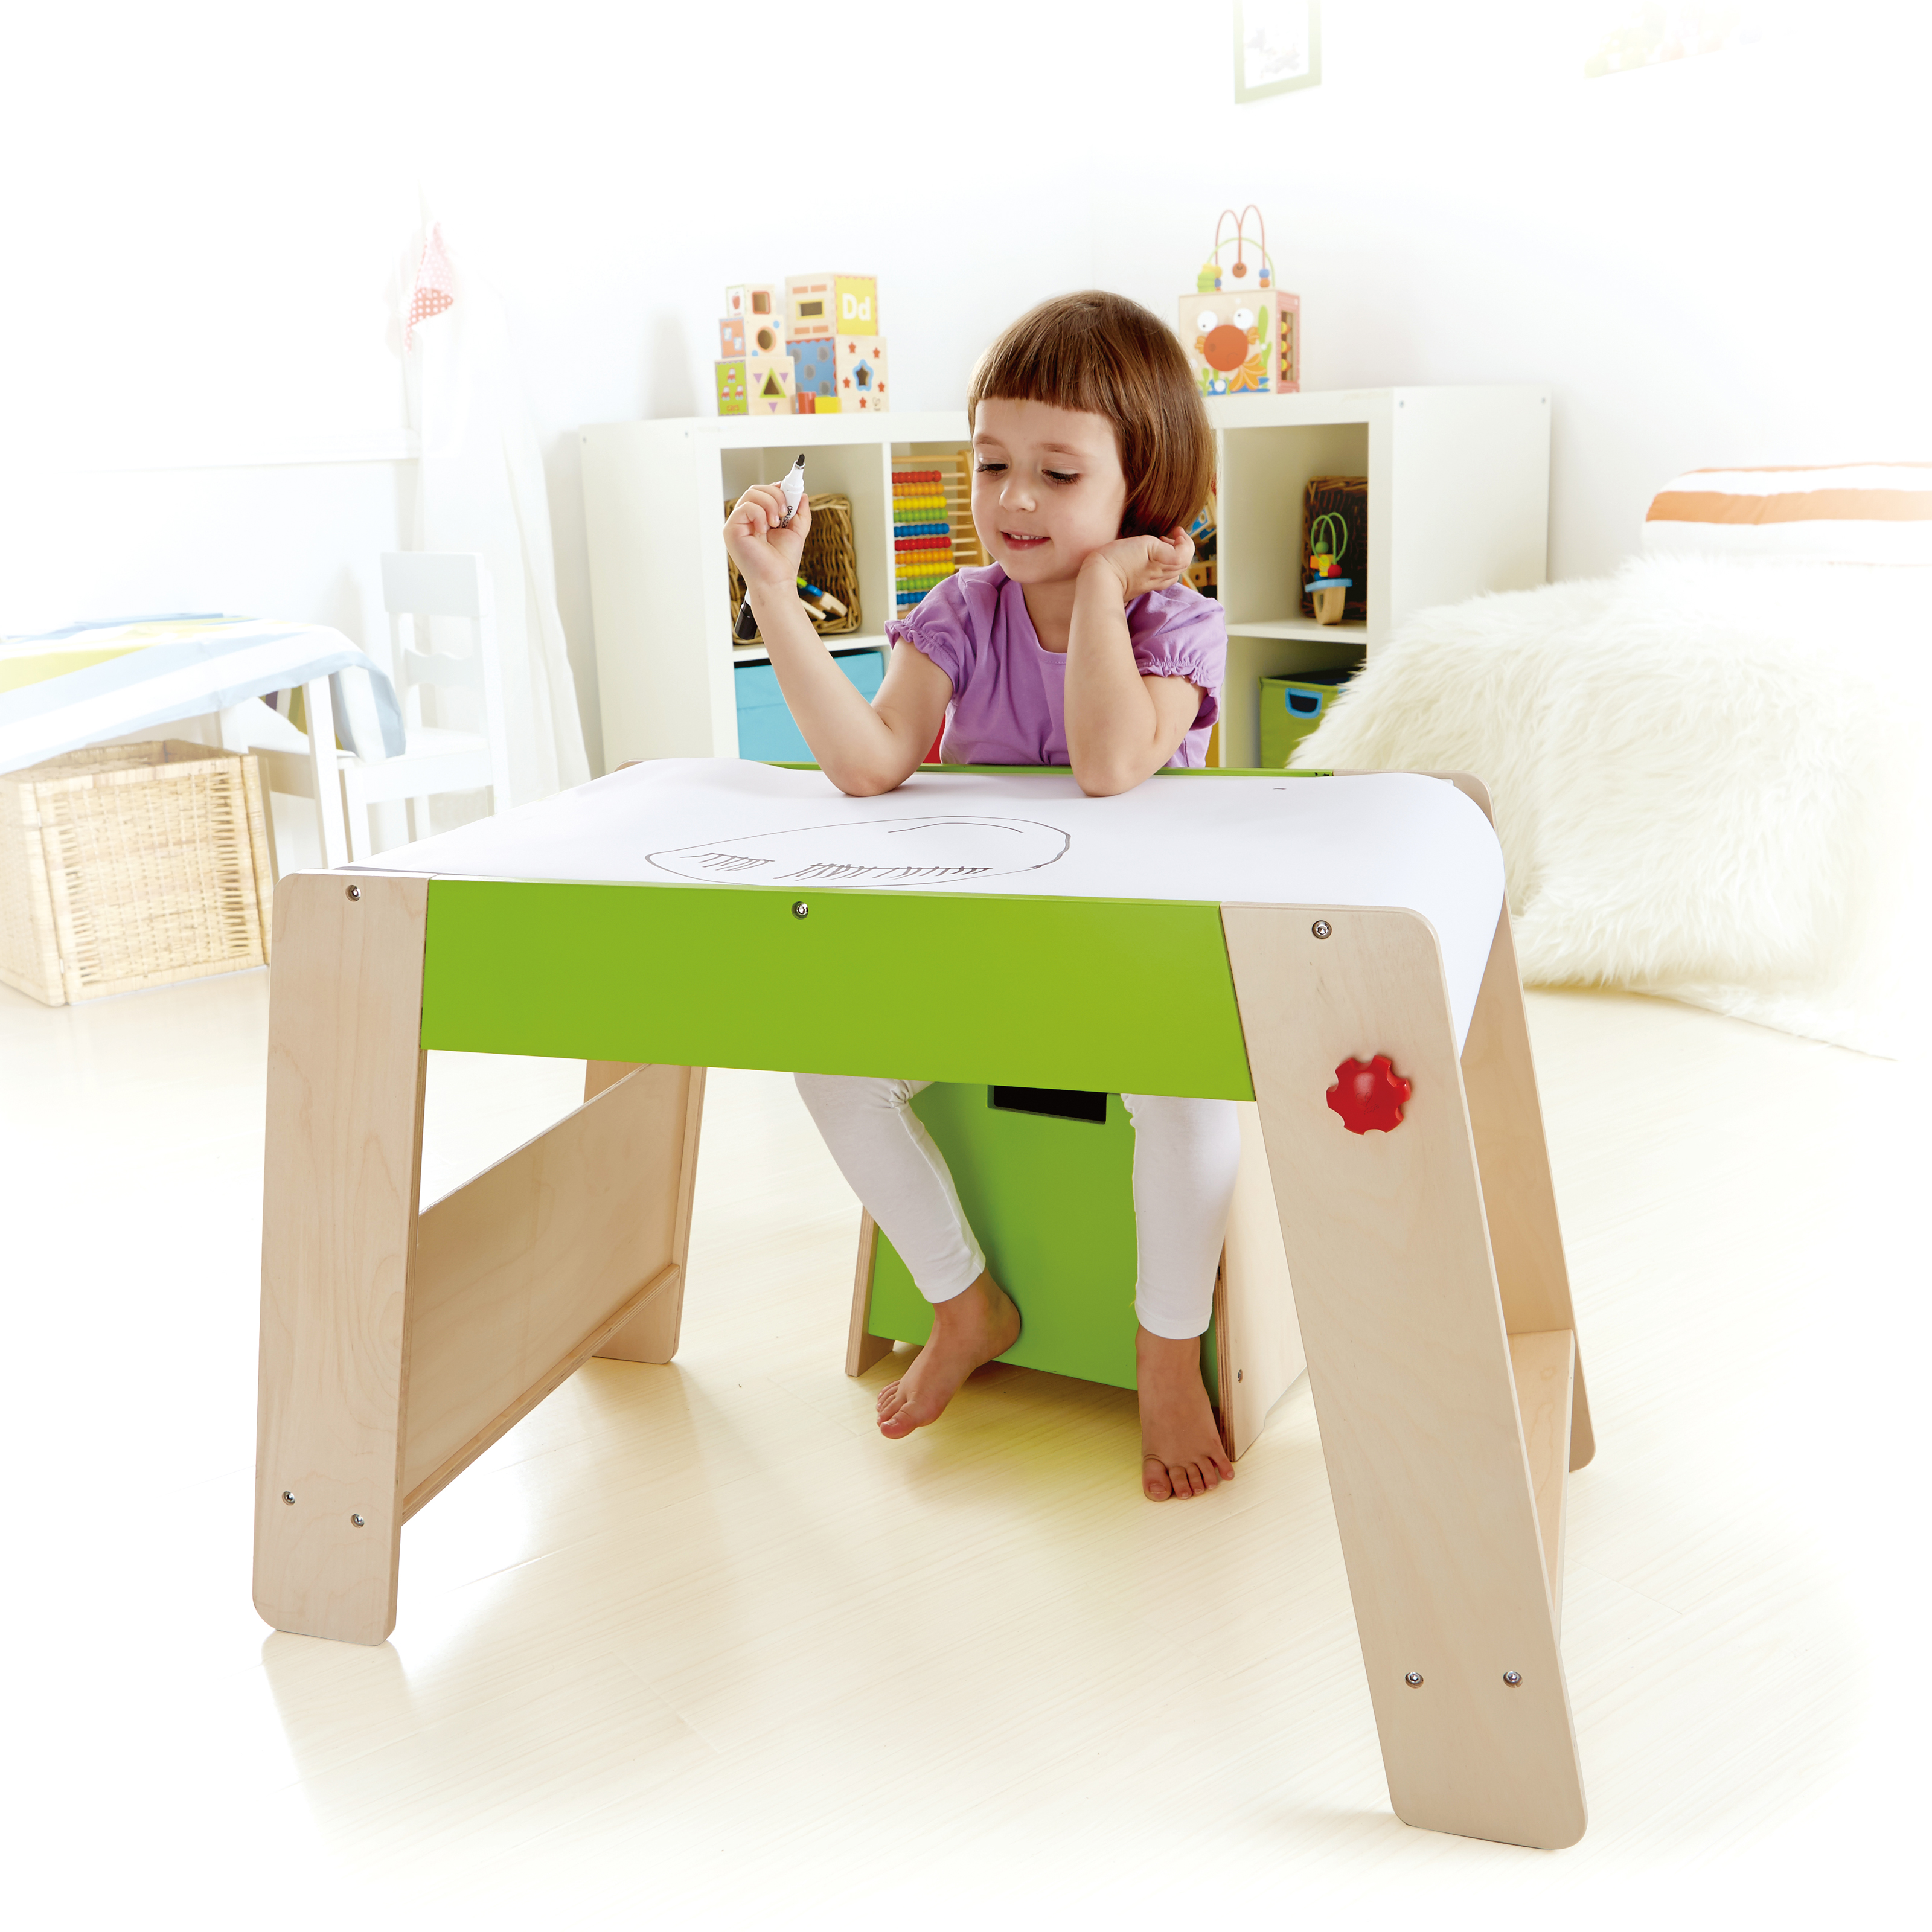 Good Kids Art Table With Paper Roll Hd9h19 Tjihome